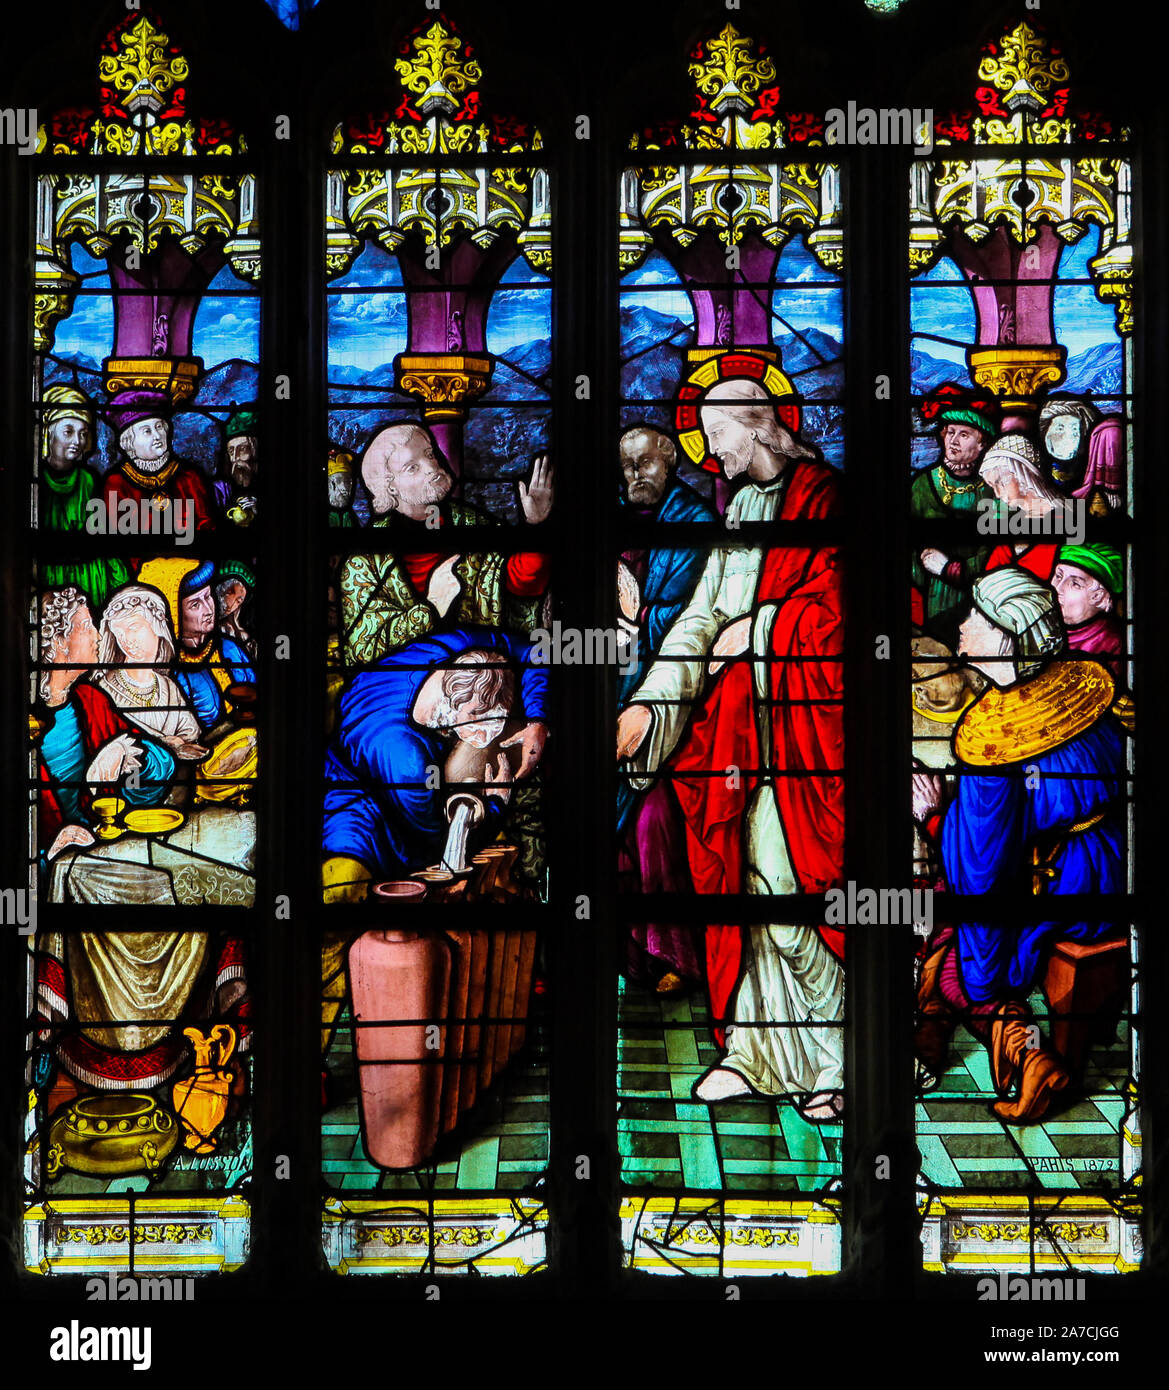 Stained Glass in the Church of St James in Le Treport, France, depicting Jesus and Mary at the Marriage at Cana Stock Photo